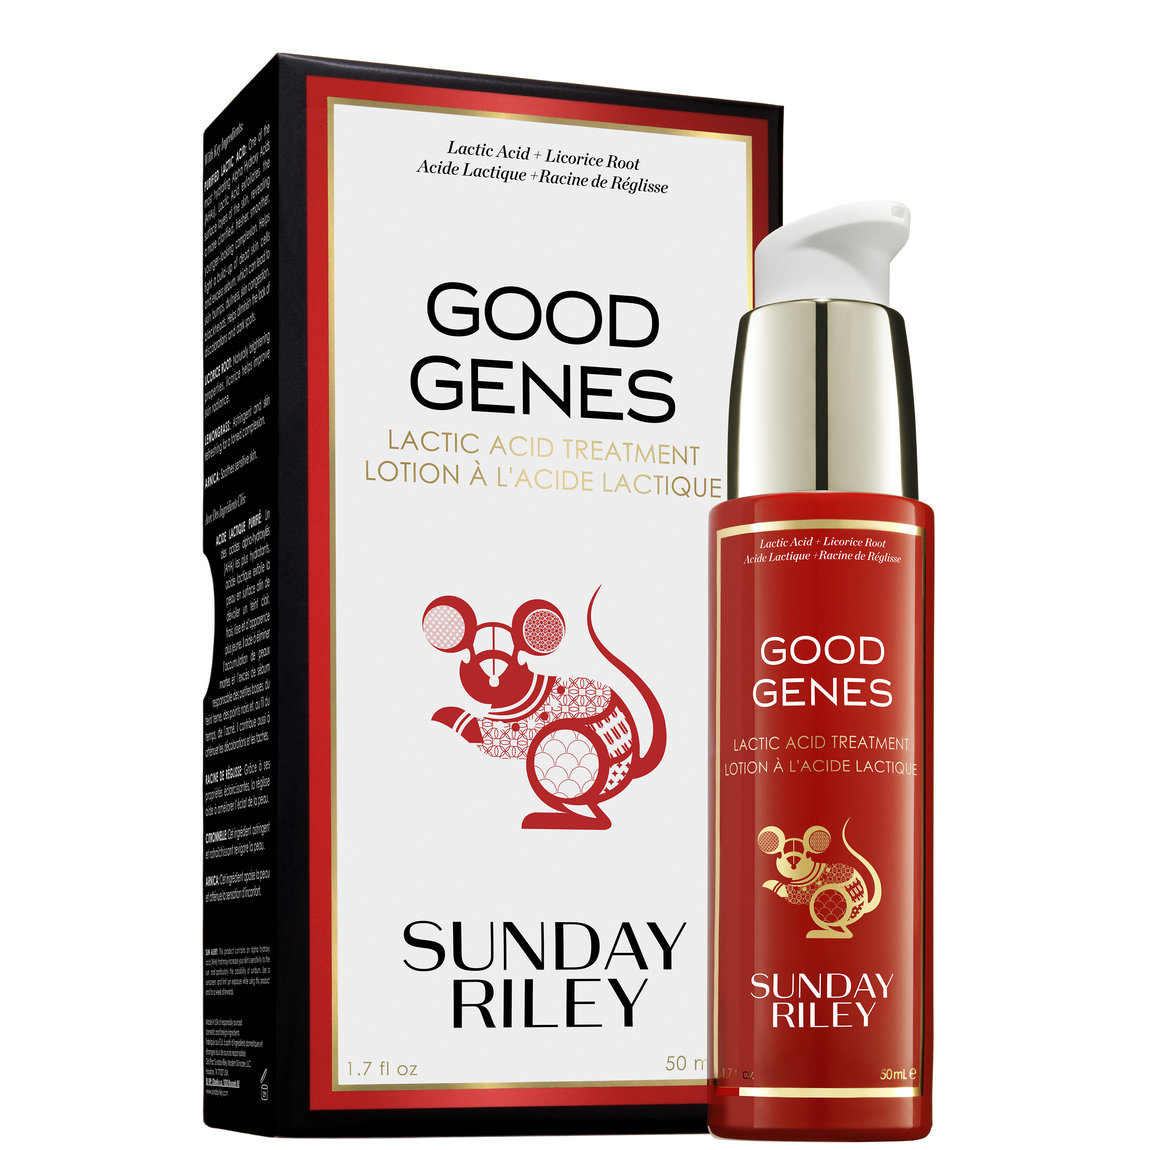 Sunday Riley Good Genes All-In-One Lactic Acid Treatment Lunar New Year 50 ml product swatch.